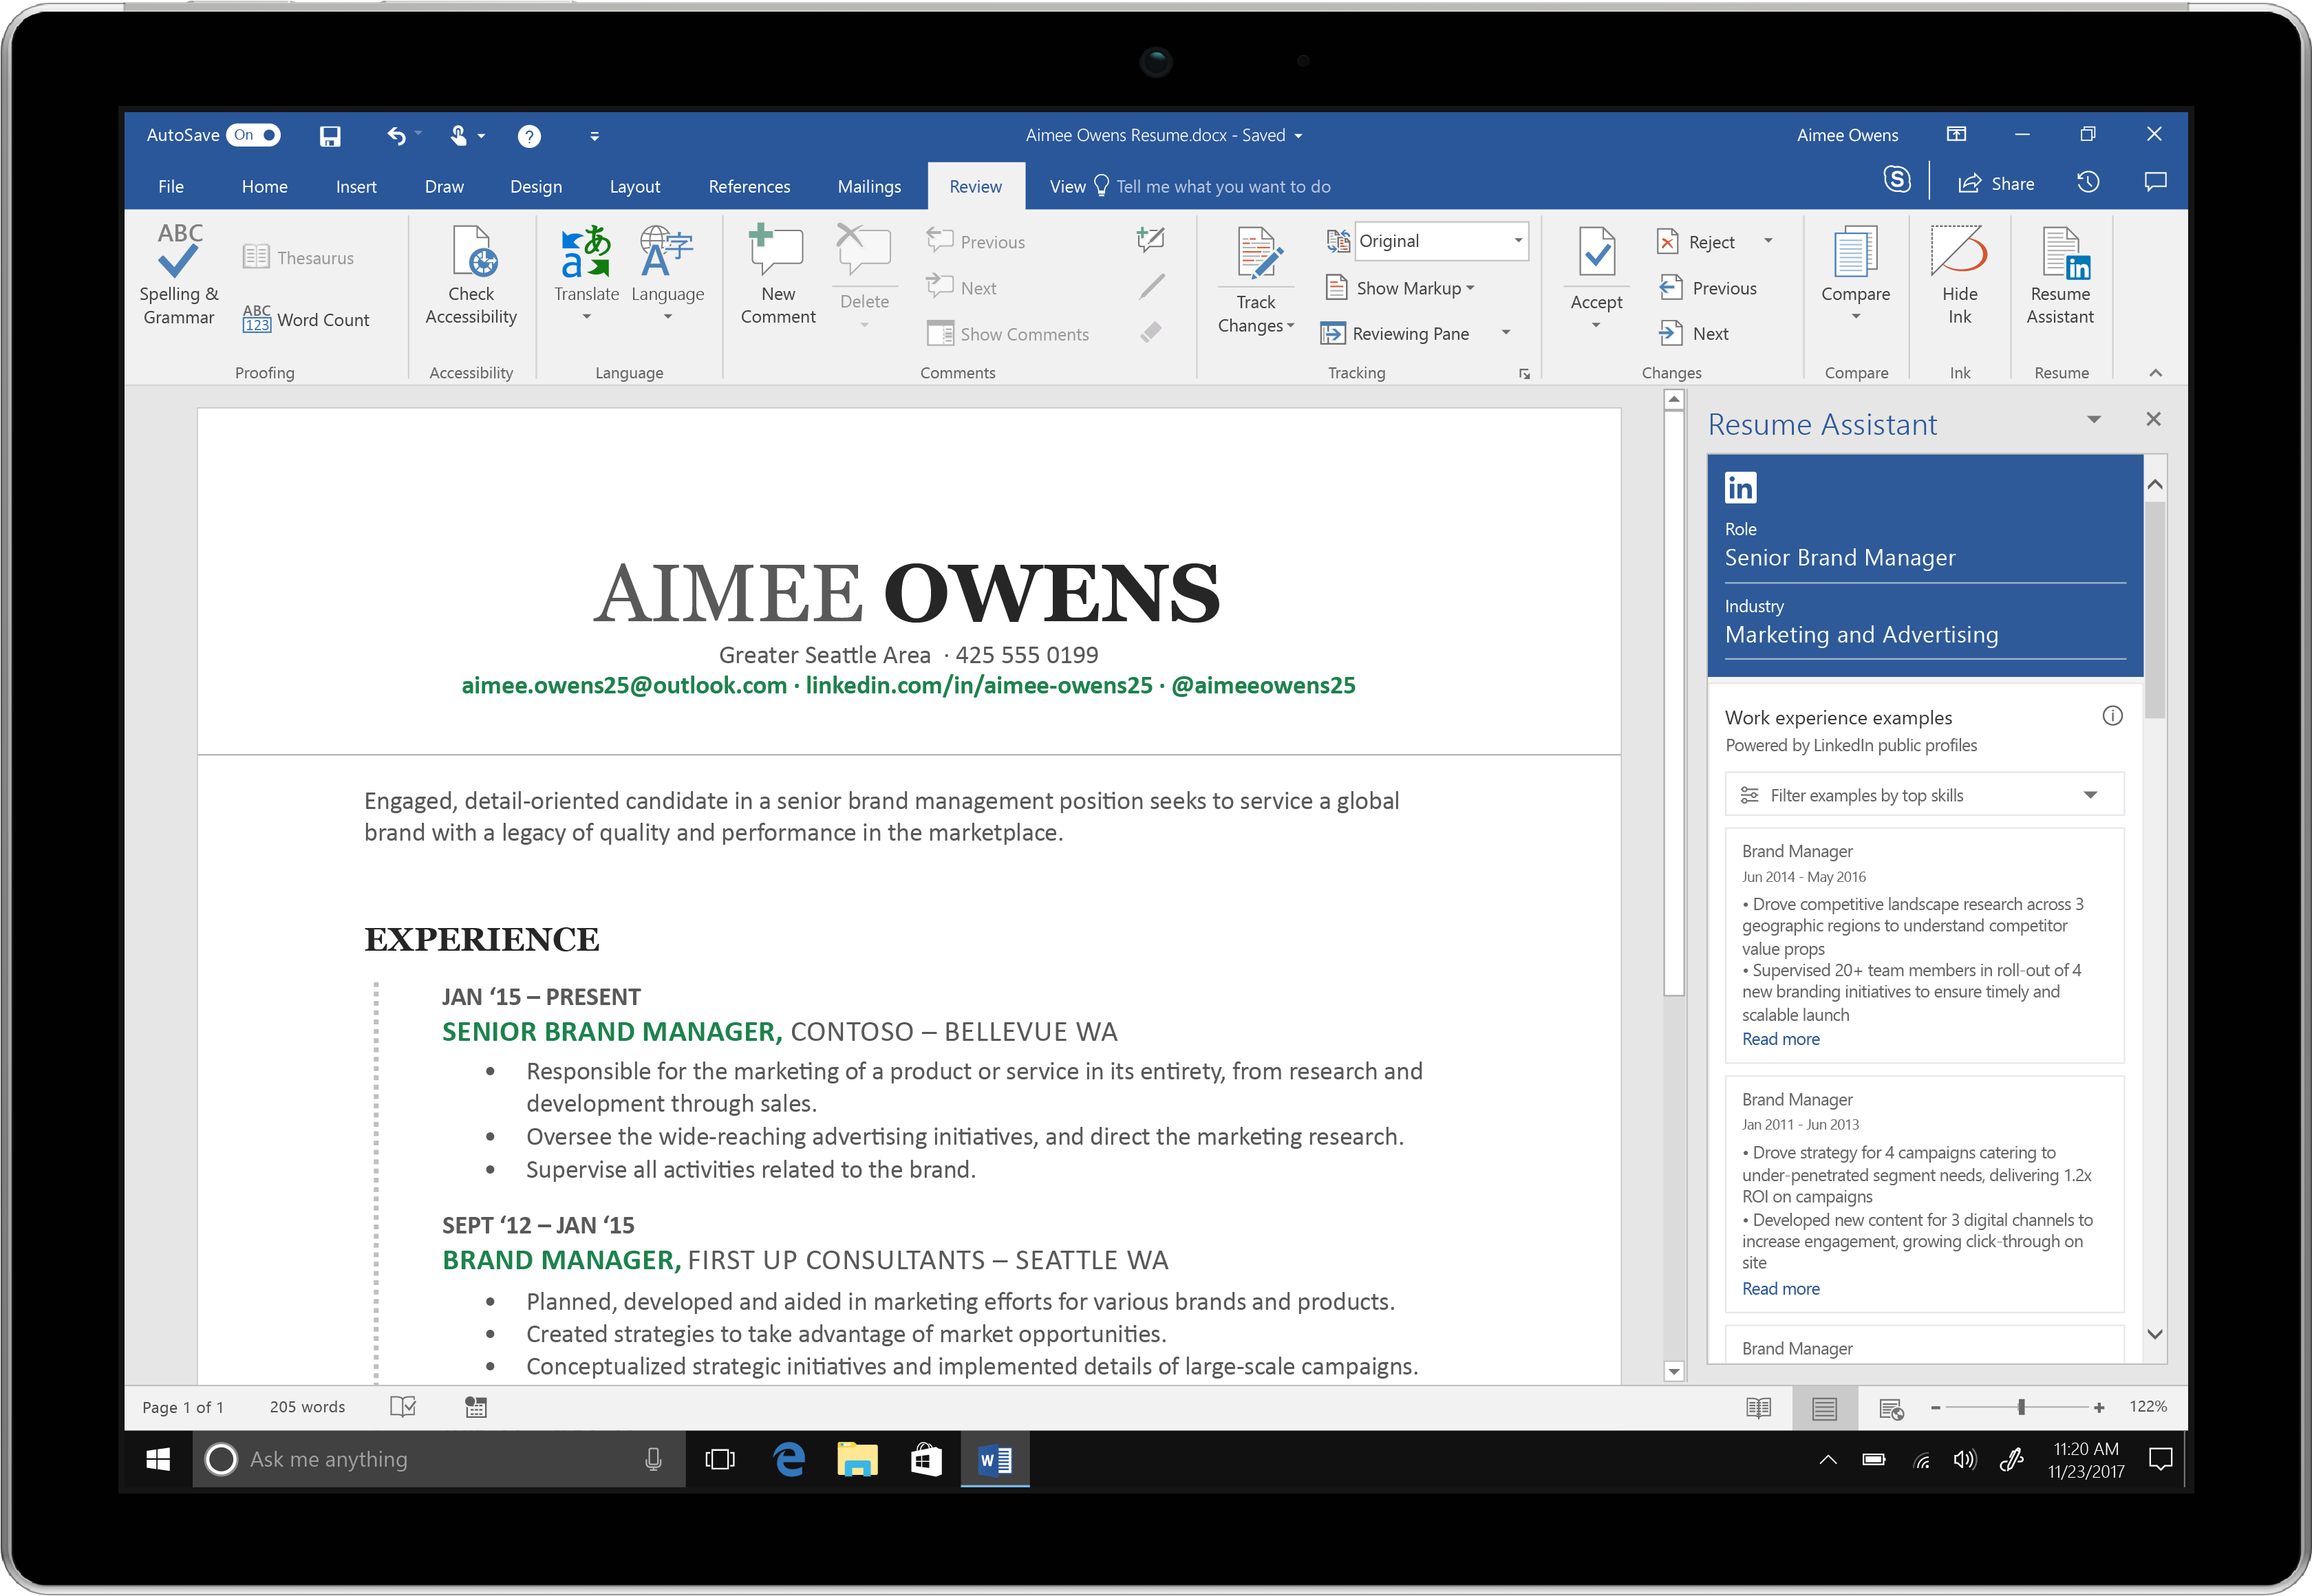 87286_Word_Review_ResumeAssistant_unfilterednew_Surface_m6